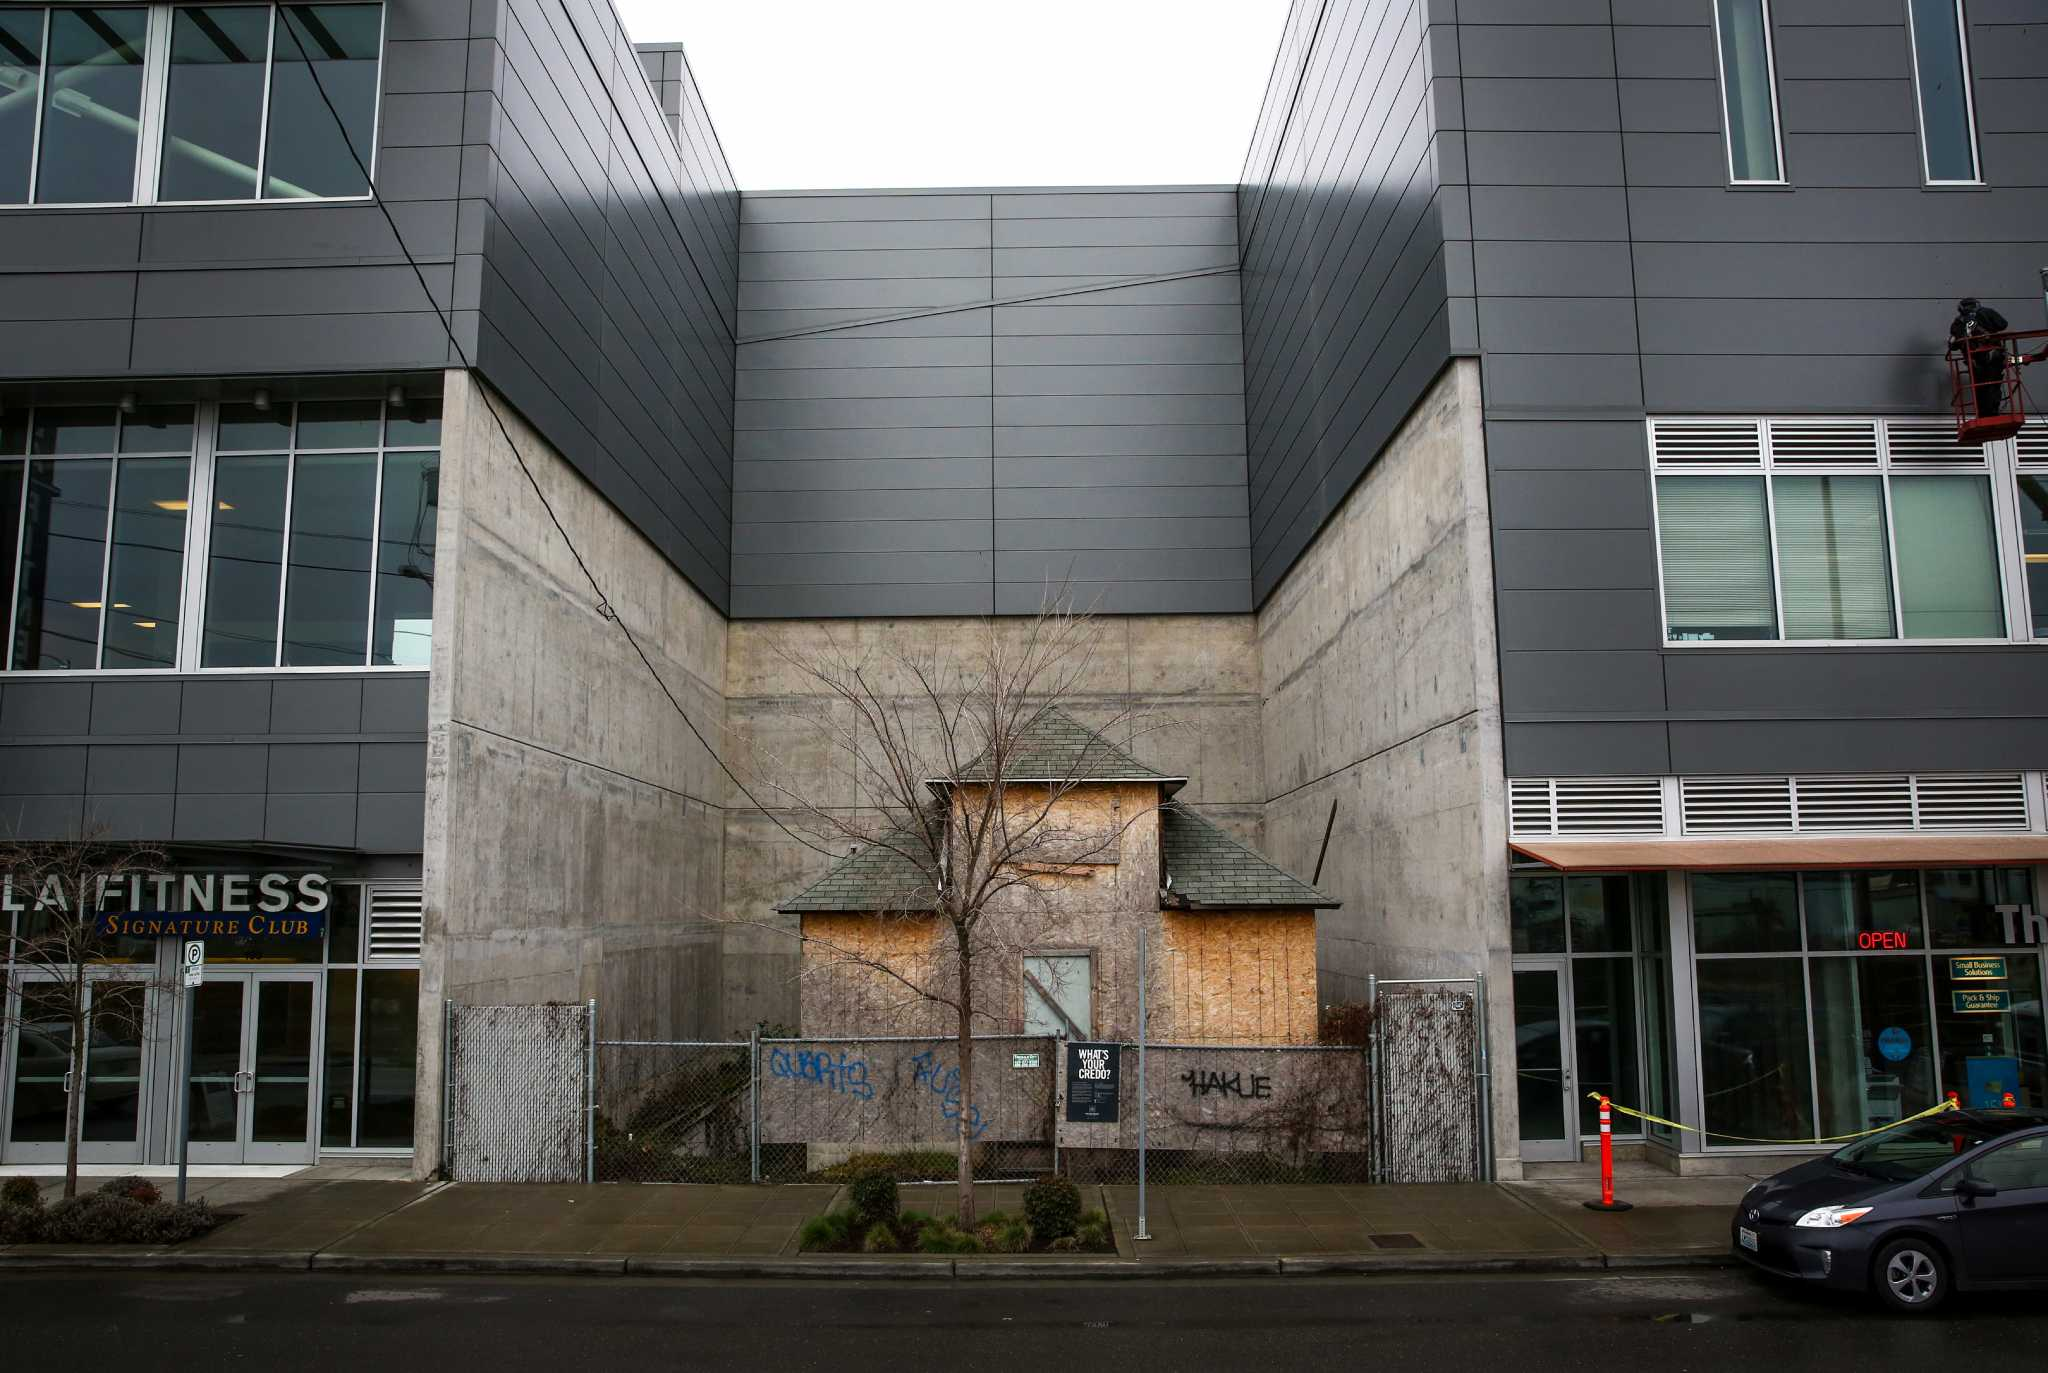 edith macefield house set for foreclosure auction - seattlepi